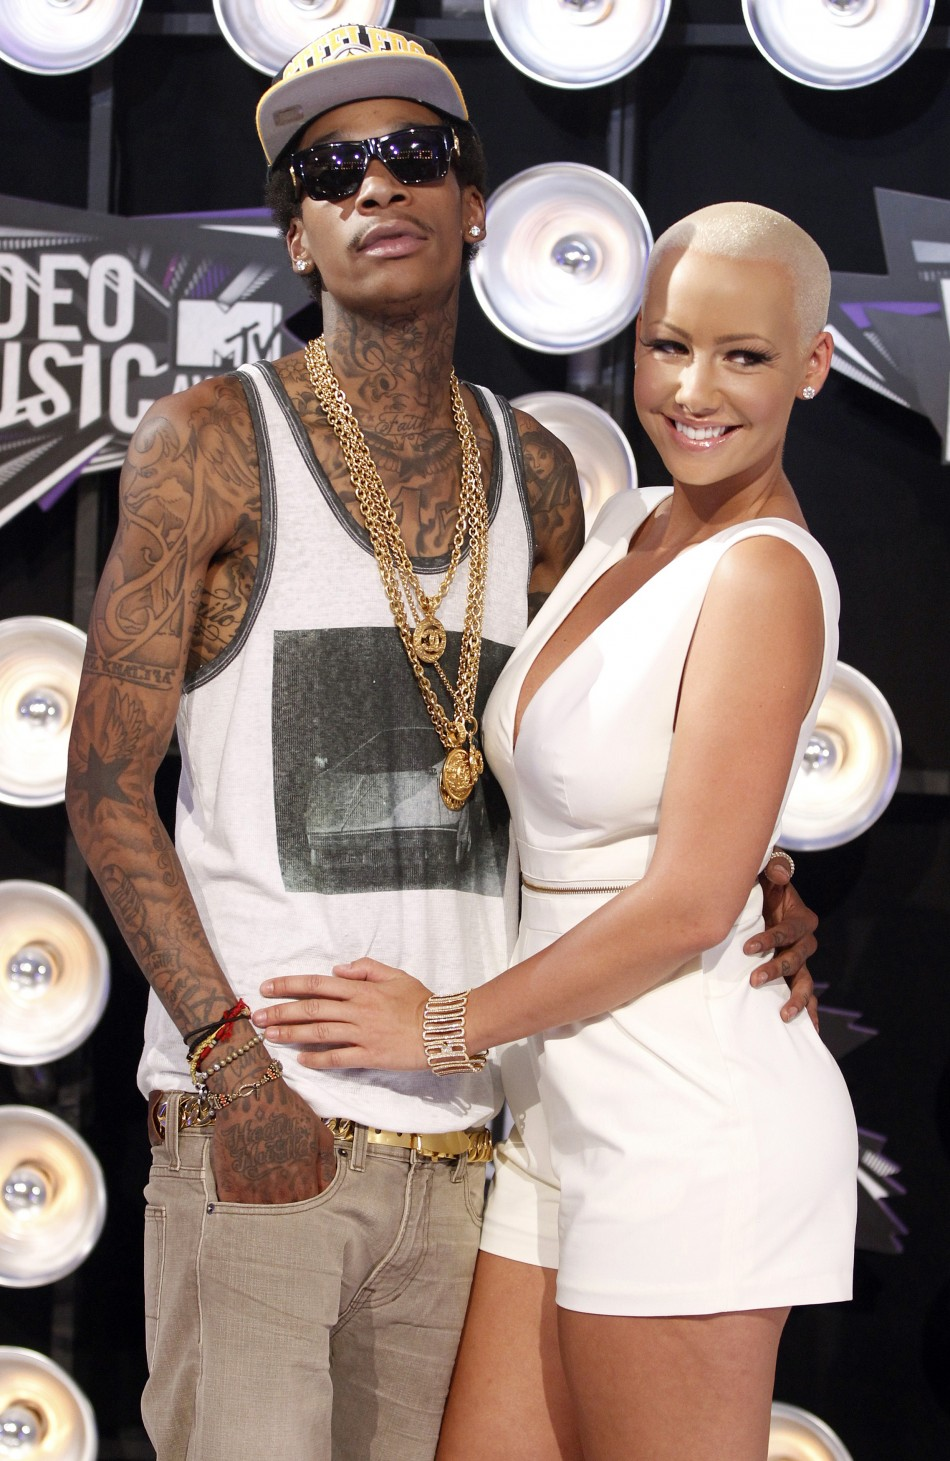 US rapper Wiz Khalifa proposed to model girlfriend Amber Rose and she accepted